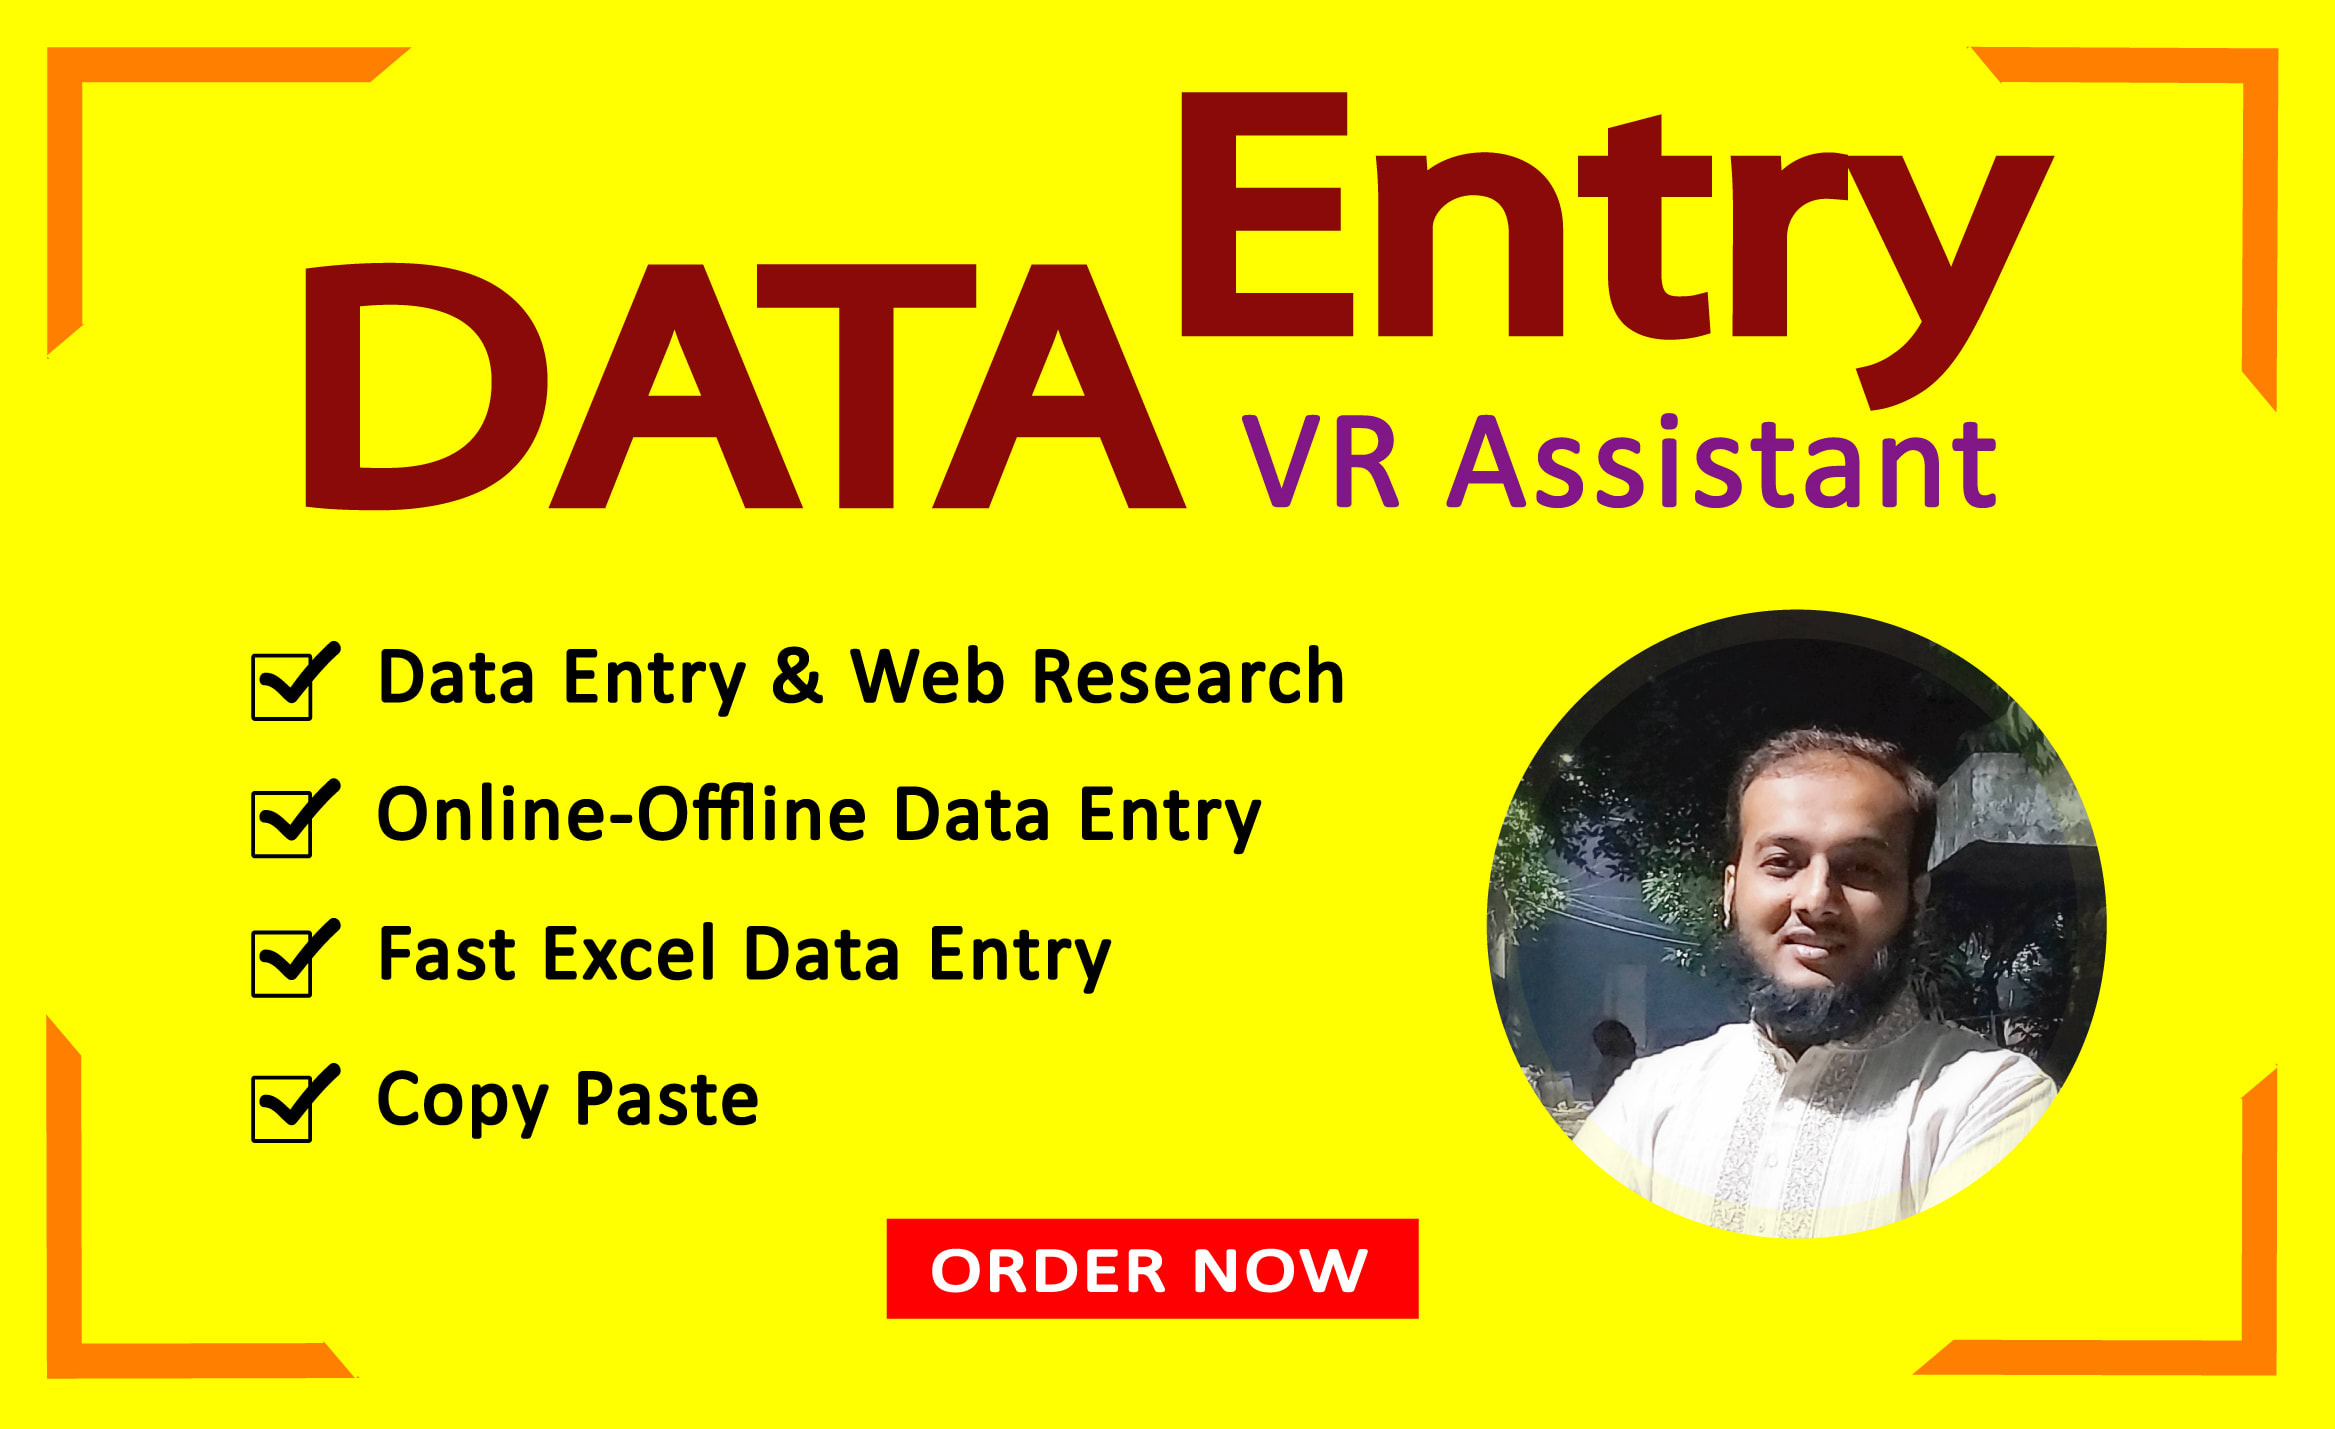 I will be a virtual assistant for data entry, FiverrBox